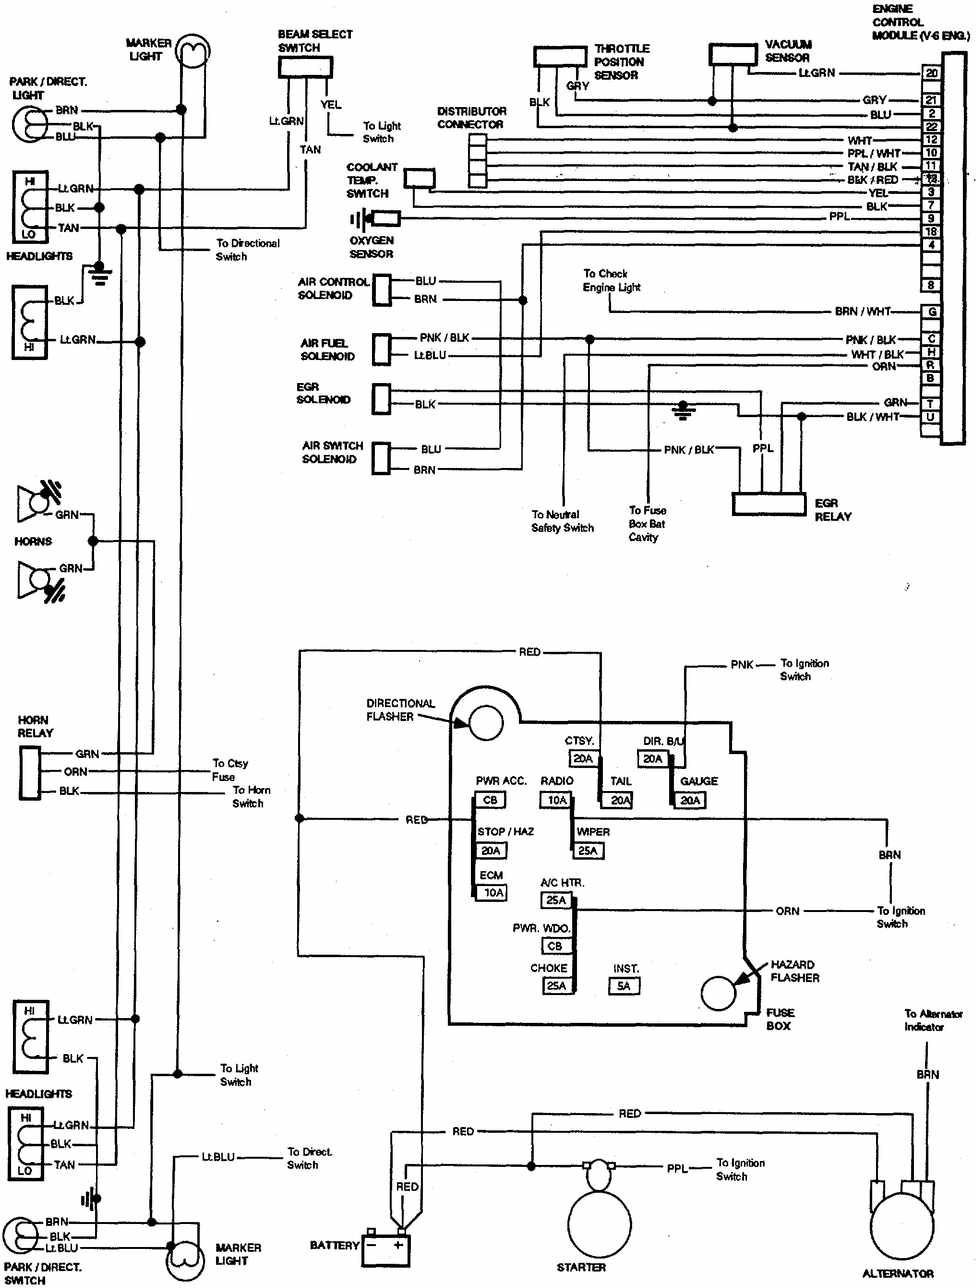 Herein we can see the 1981-1987 Chevrolet V8 Trucks electrical wiring  diagram. Description from diagram… | Chevy trucks, 1984 chevy truck,  Electrical wiring diagram Pinterest